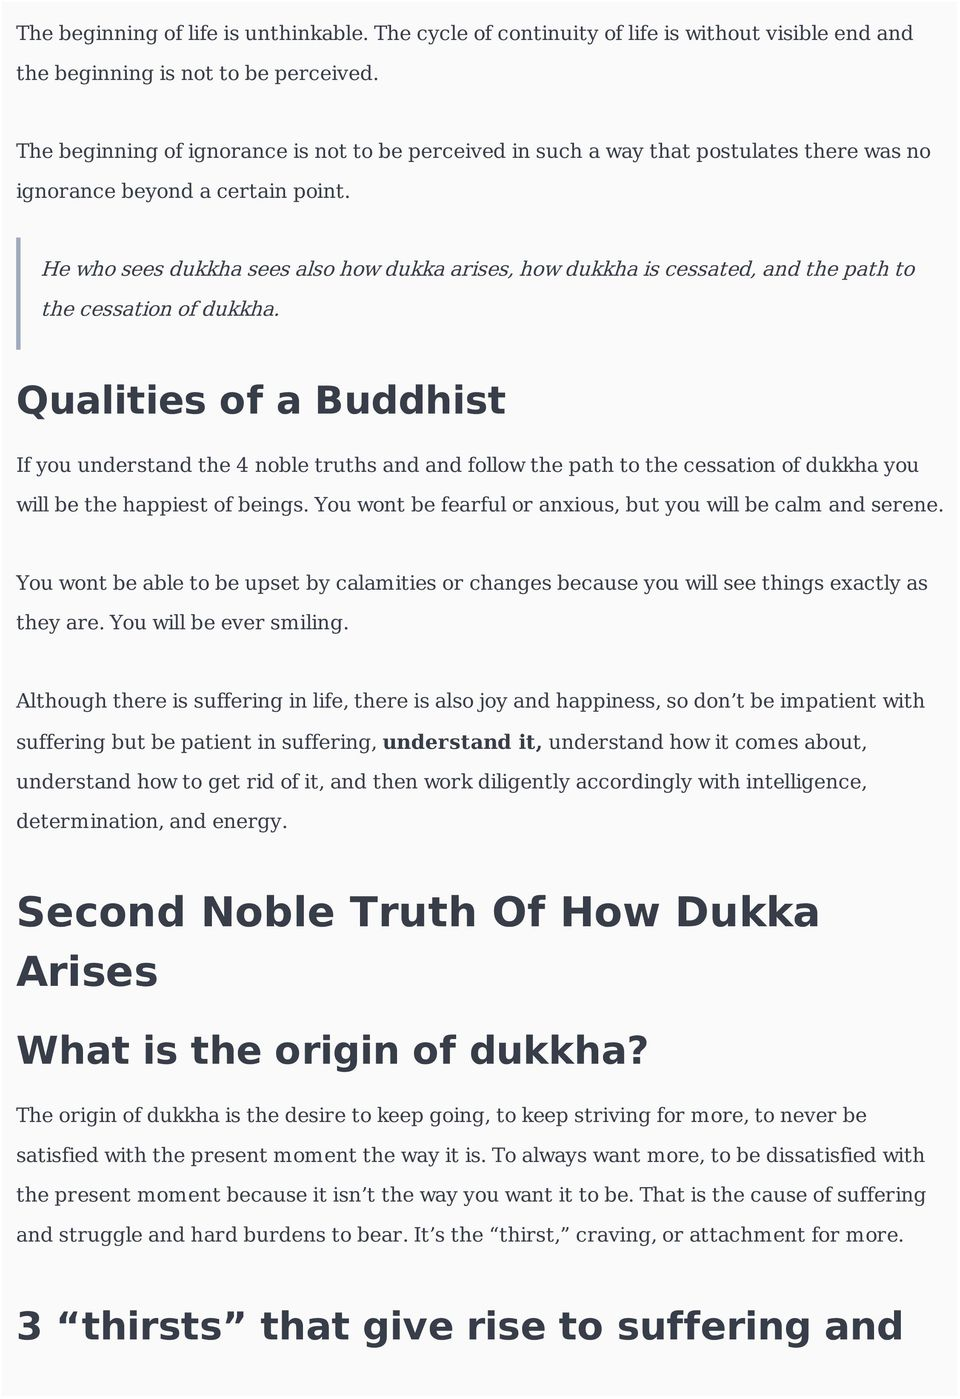 He who sees dukkha sees also how dukka arises, how dukkha is cessated, and the path to the cessation of dukkha.